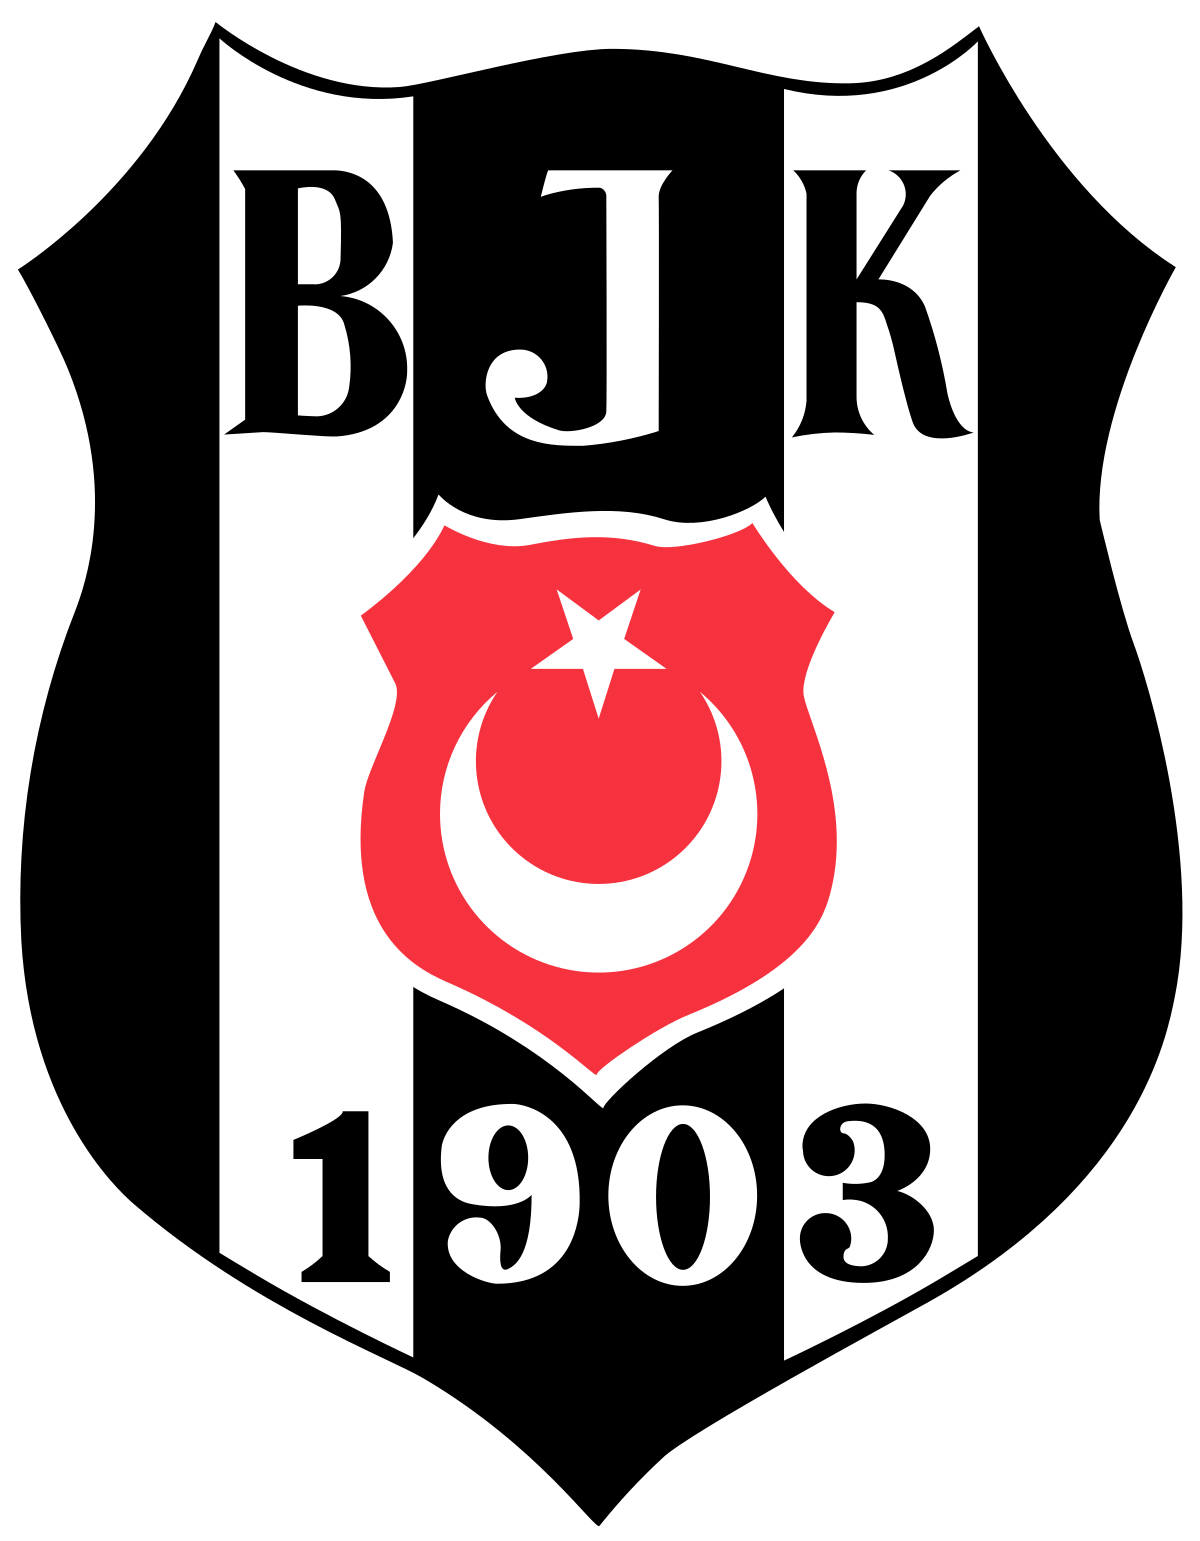 Basketball stars branches clipart svg free library Beşiktaş J.K. (men's basketball) - Wikipedia svg free library